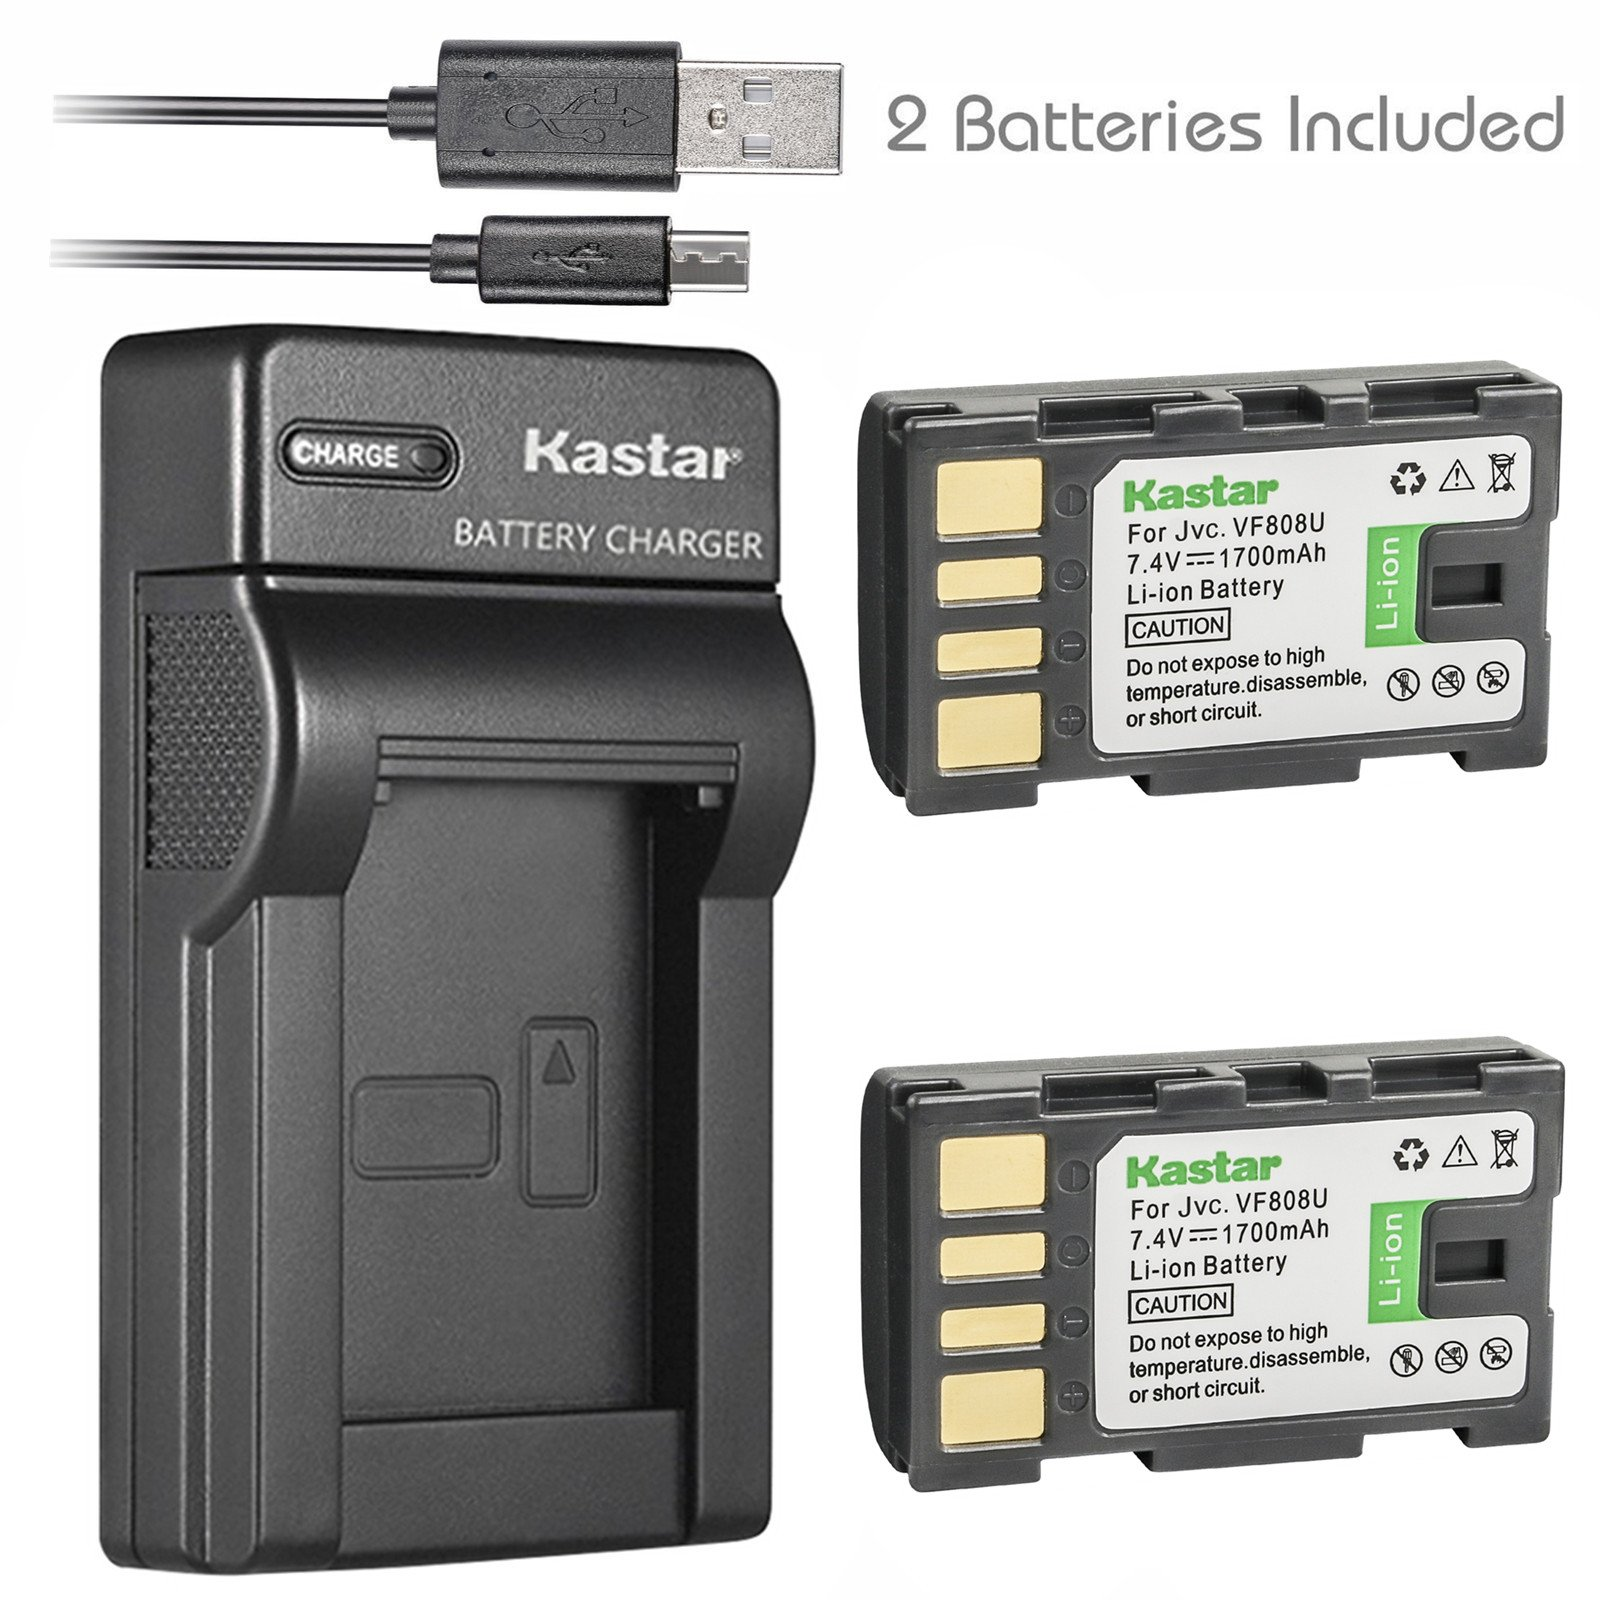 Kastar Battery (X2) & Slim USB Charger for JVC BN-VF808, BN-VF808U, BNVF808 and JVC Everio GZ-MG130 148 150 155 175 255 275 575 GZ-HD7 GR-D745 746 750 760 770 771 775 790 796 JVC MiniDV + More